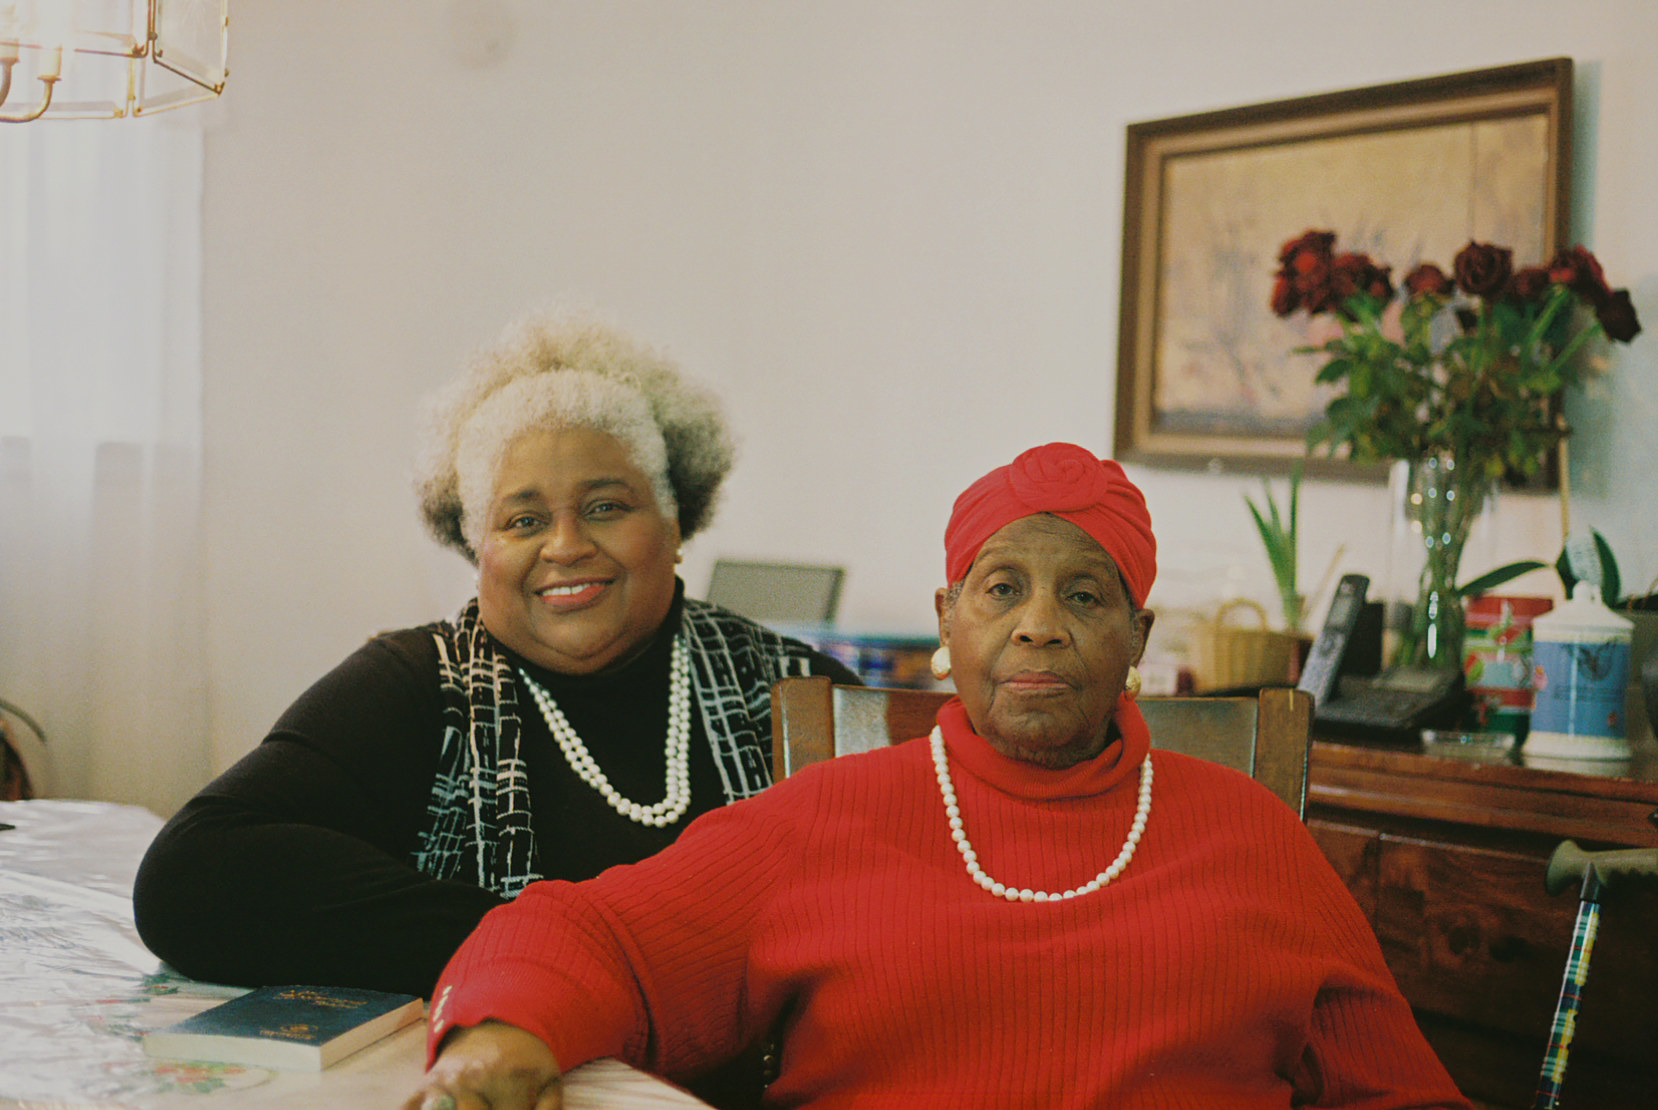 Two older women at a dining room table